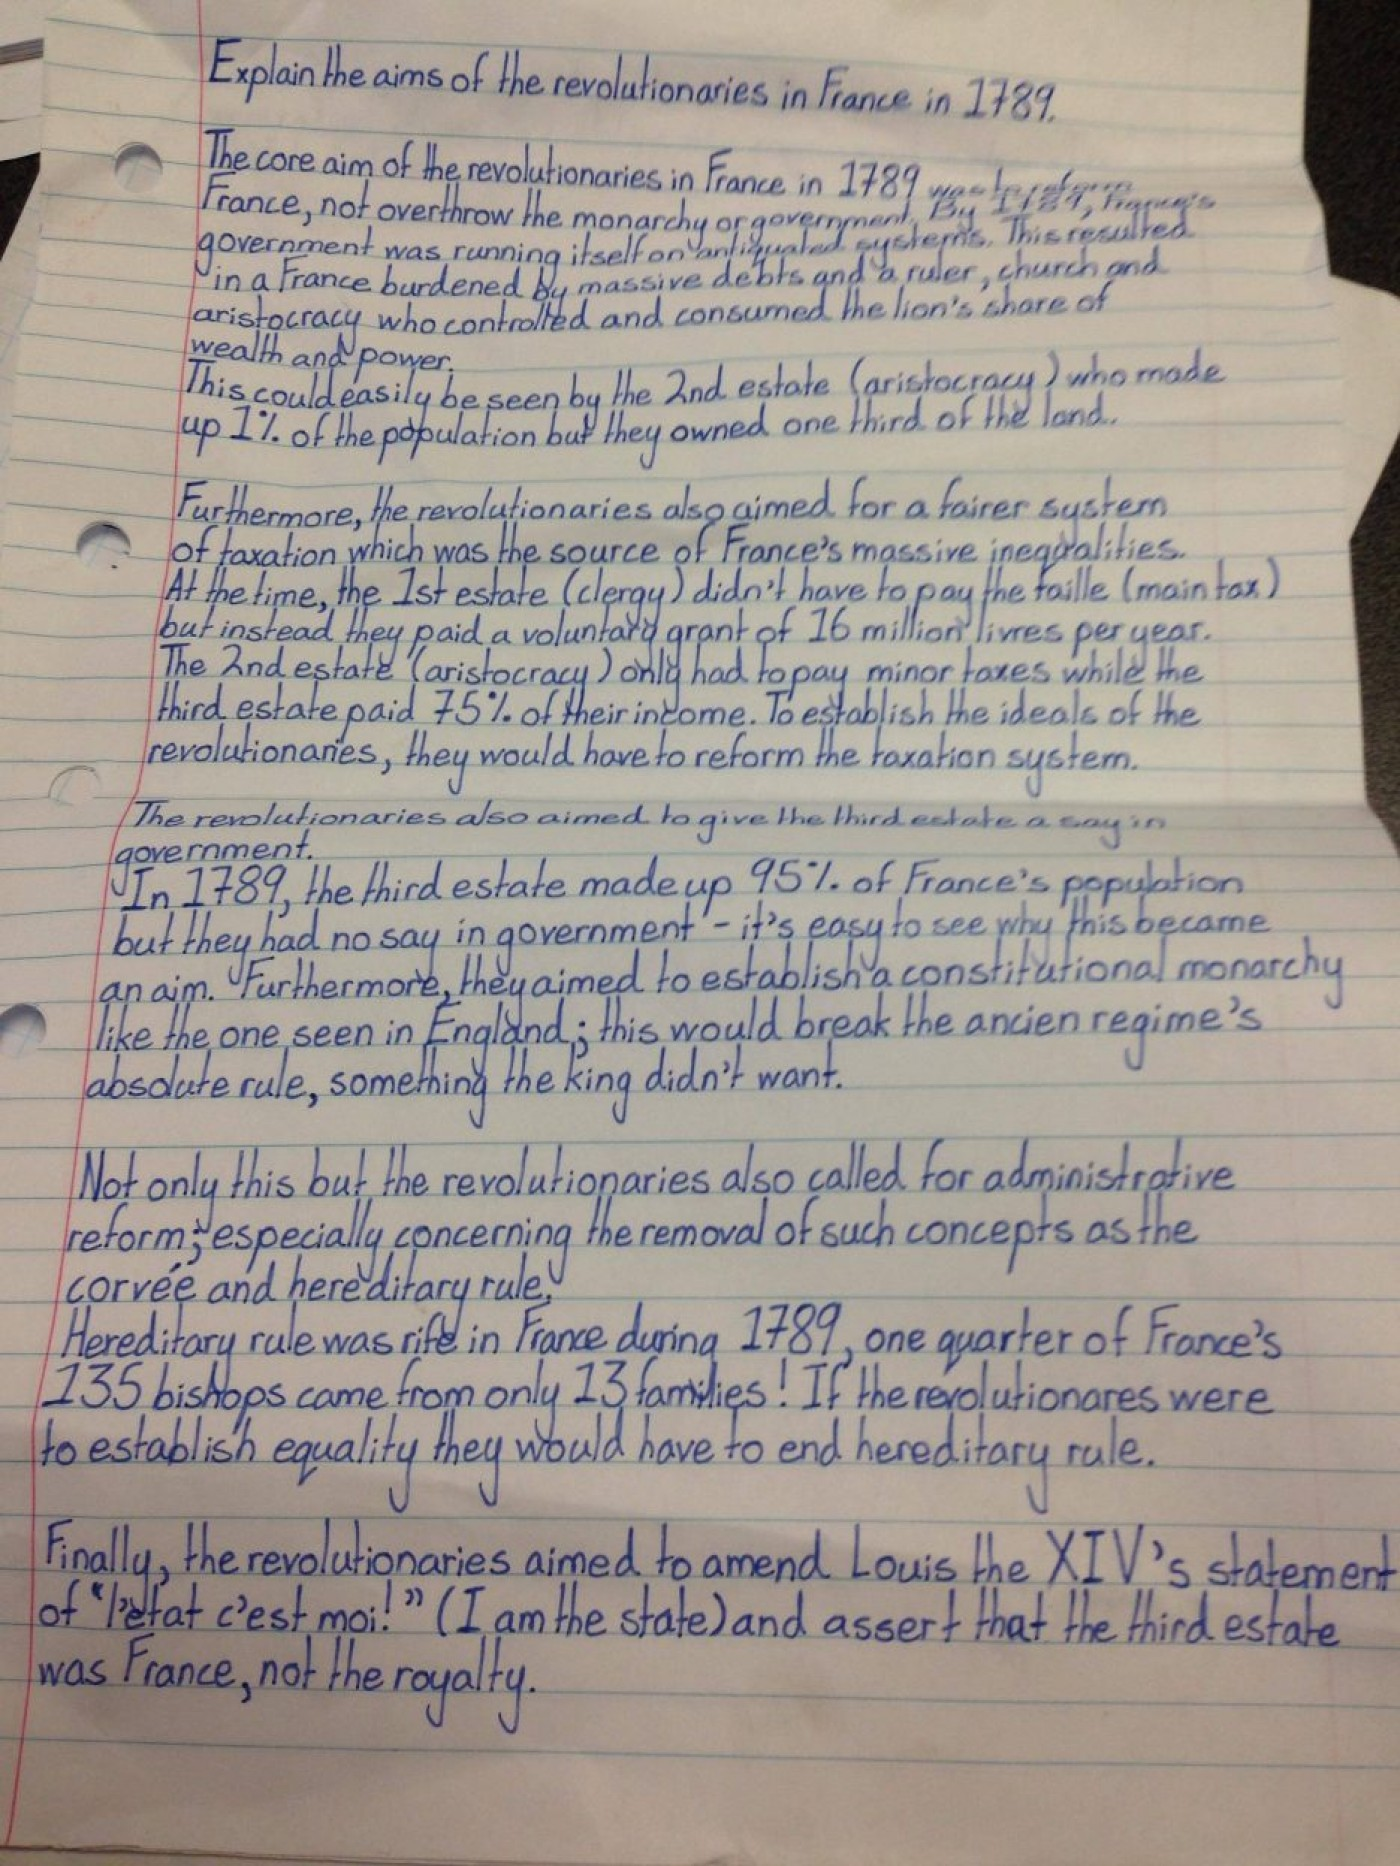 016 Essaysrench Revolution Uqdxjil Example On Questions The Essay Laidoundation Of Democracy Causes And Effects Regents Paris Provinces Conclusion Enlightenment Napoleon 936x1248 Phenomenal French Outline Titles 1400